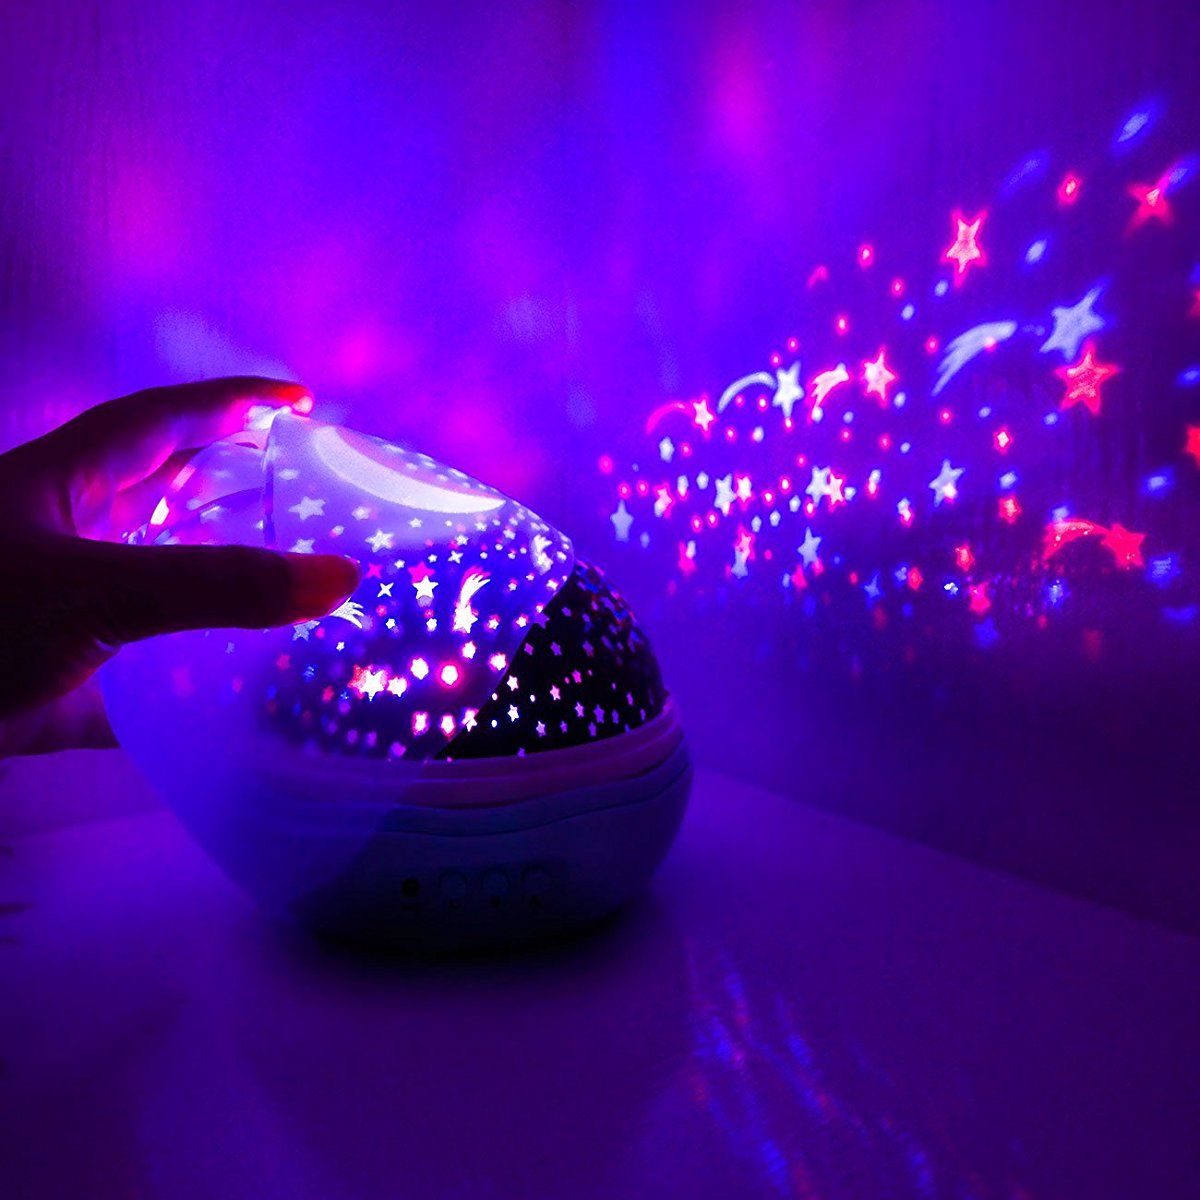 Music Multicolor Moon Star Projector Night Light Rotating Starry Led Baby Projection Lamp 12 Soft Light Music Children Bedside Lamp For Baby Kids And Adults L Baby Night Light Night Light